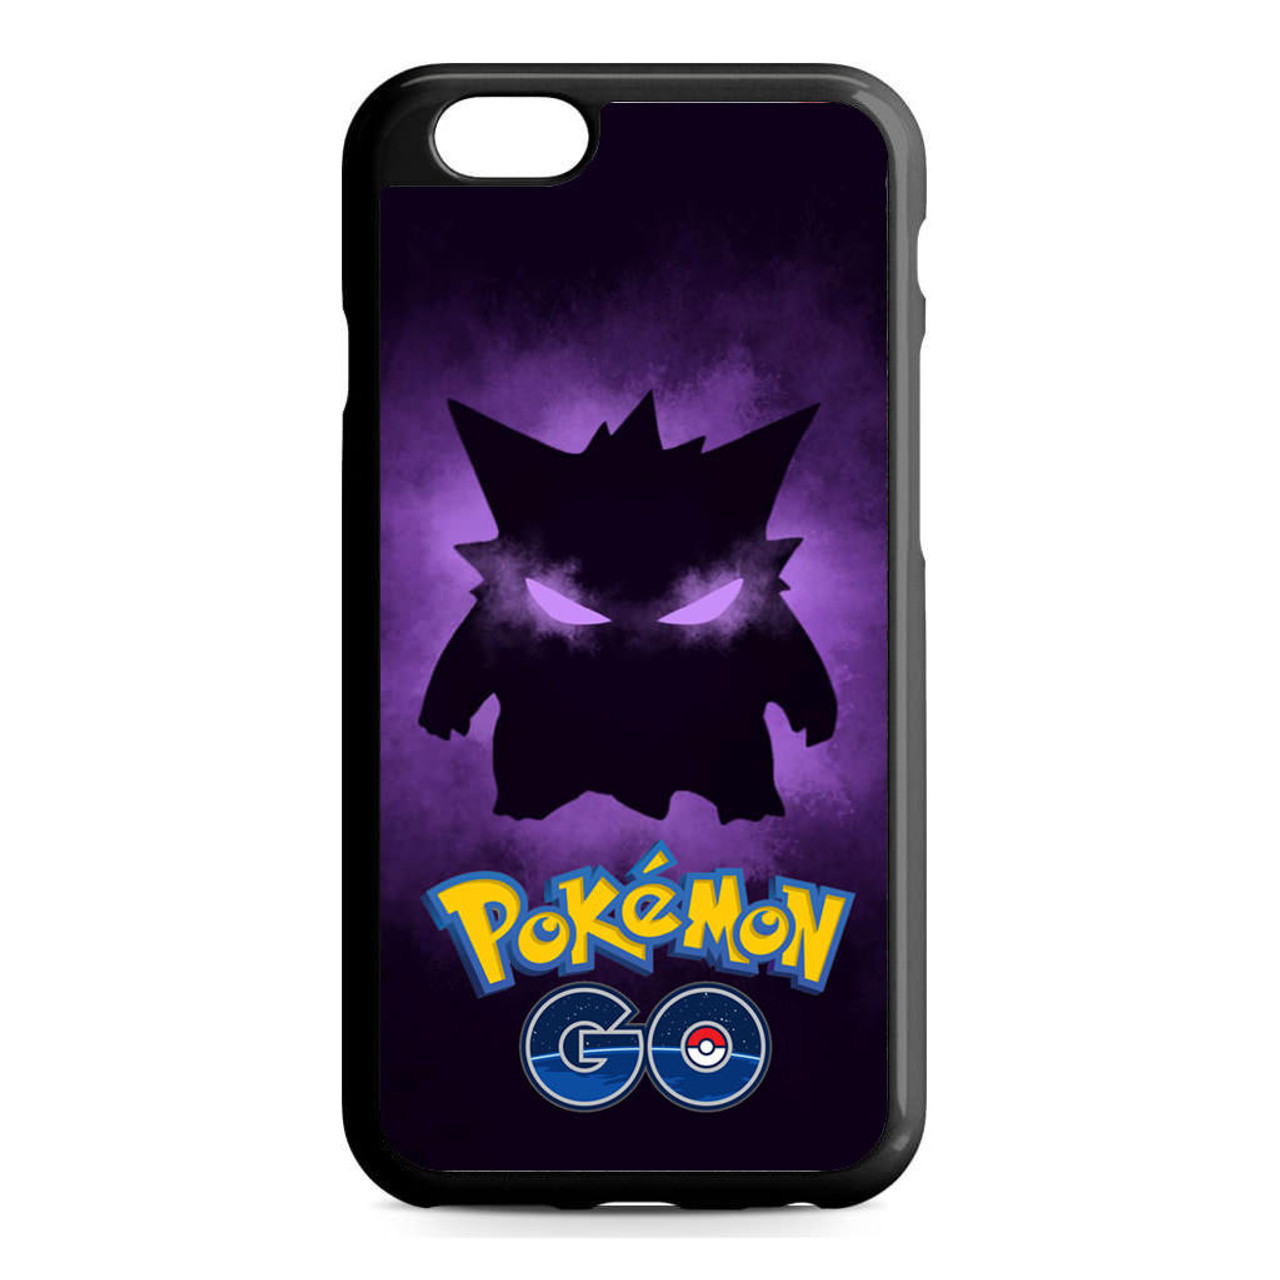 the latest 69019 9745a Pokemon GO Got the Gengar iPhone 6/6S Case